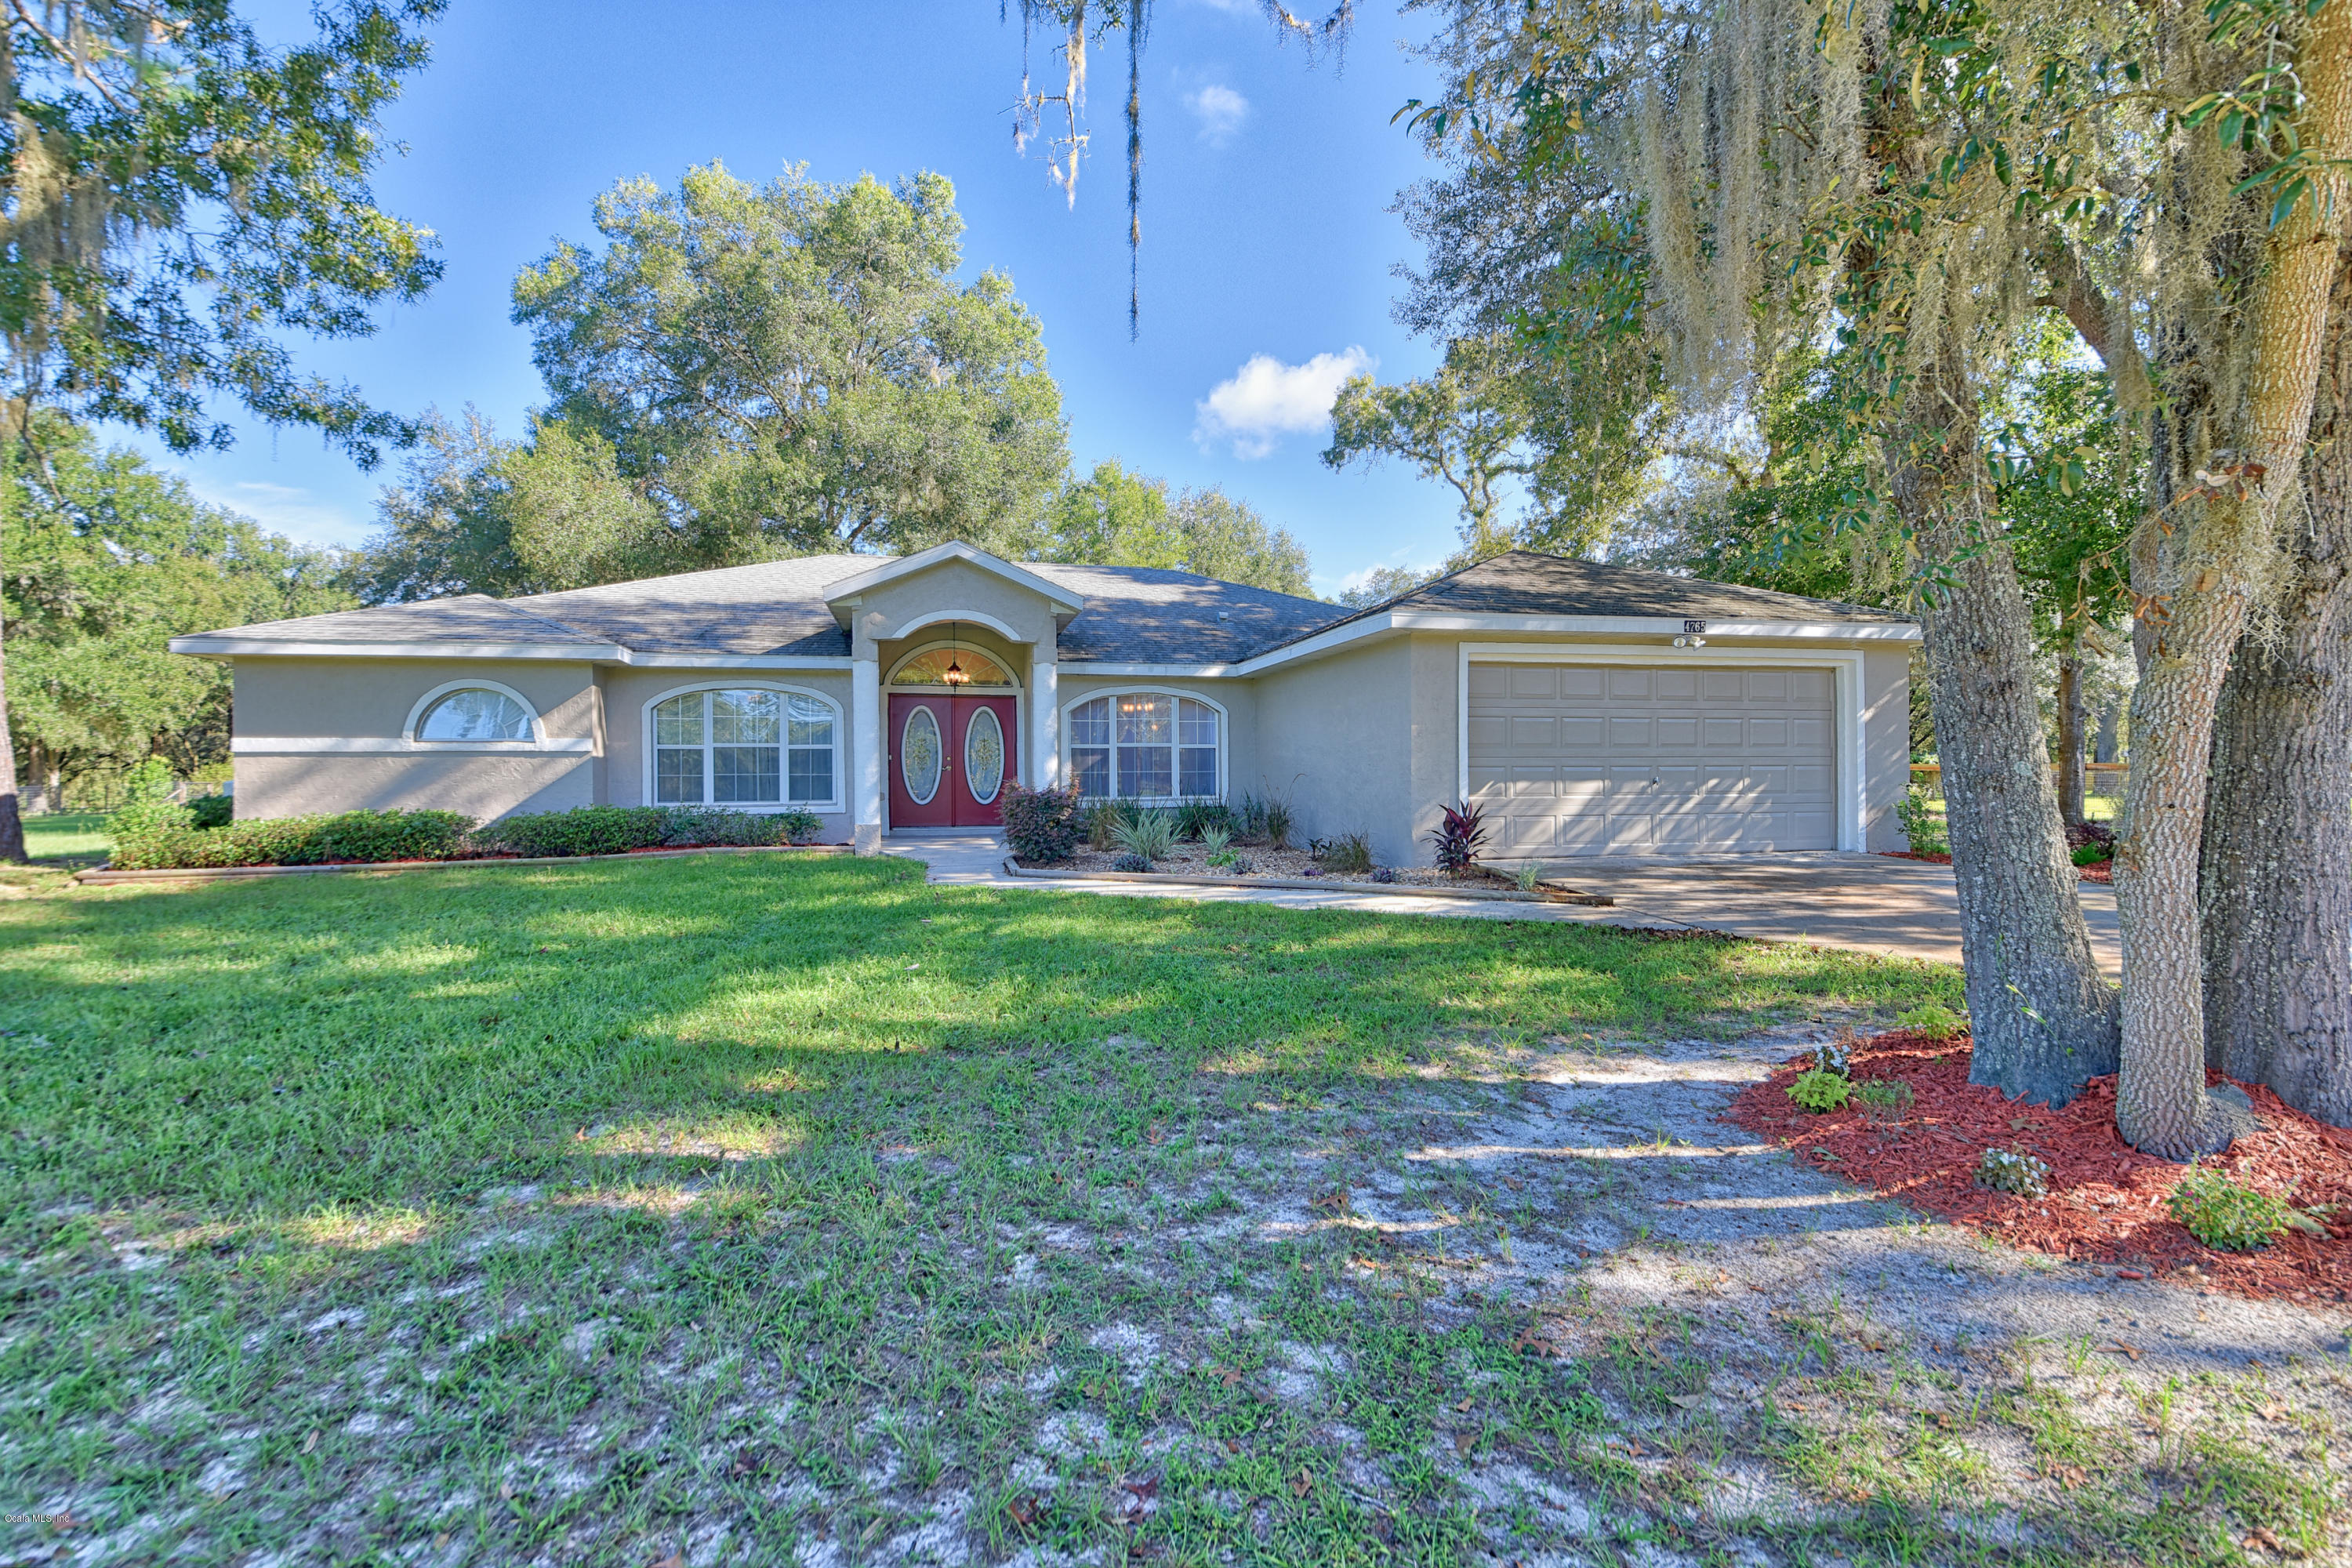 4765 NE 132ND PLACE, ANTHONY, FL 32617